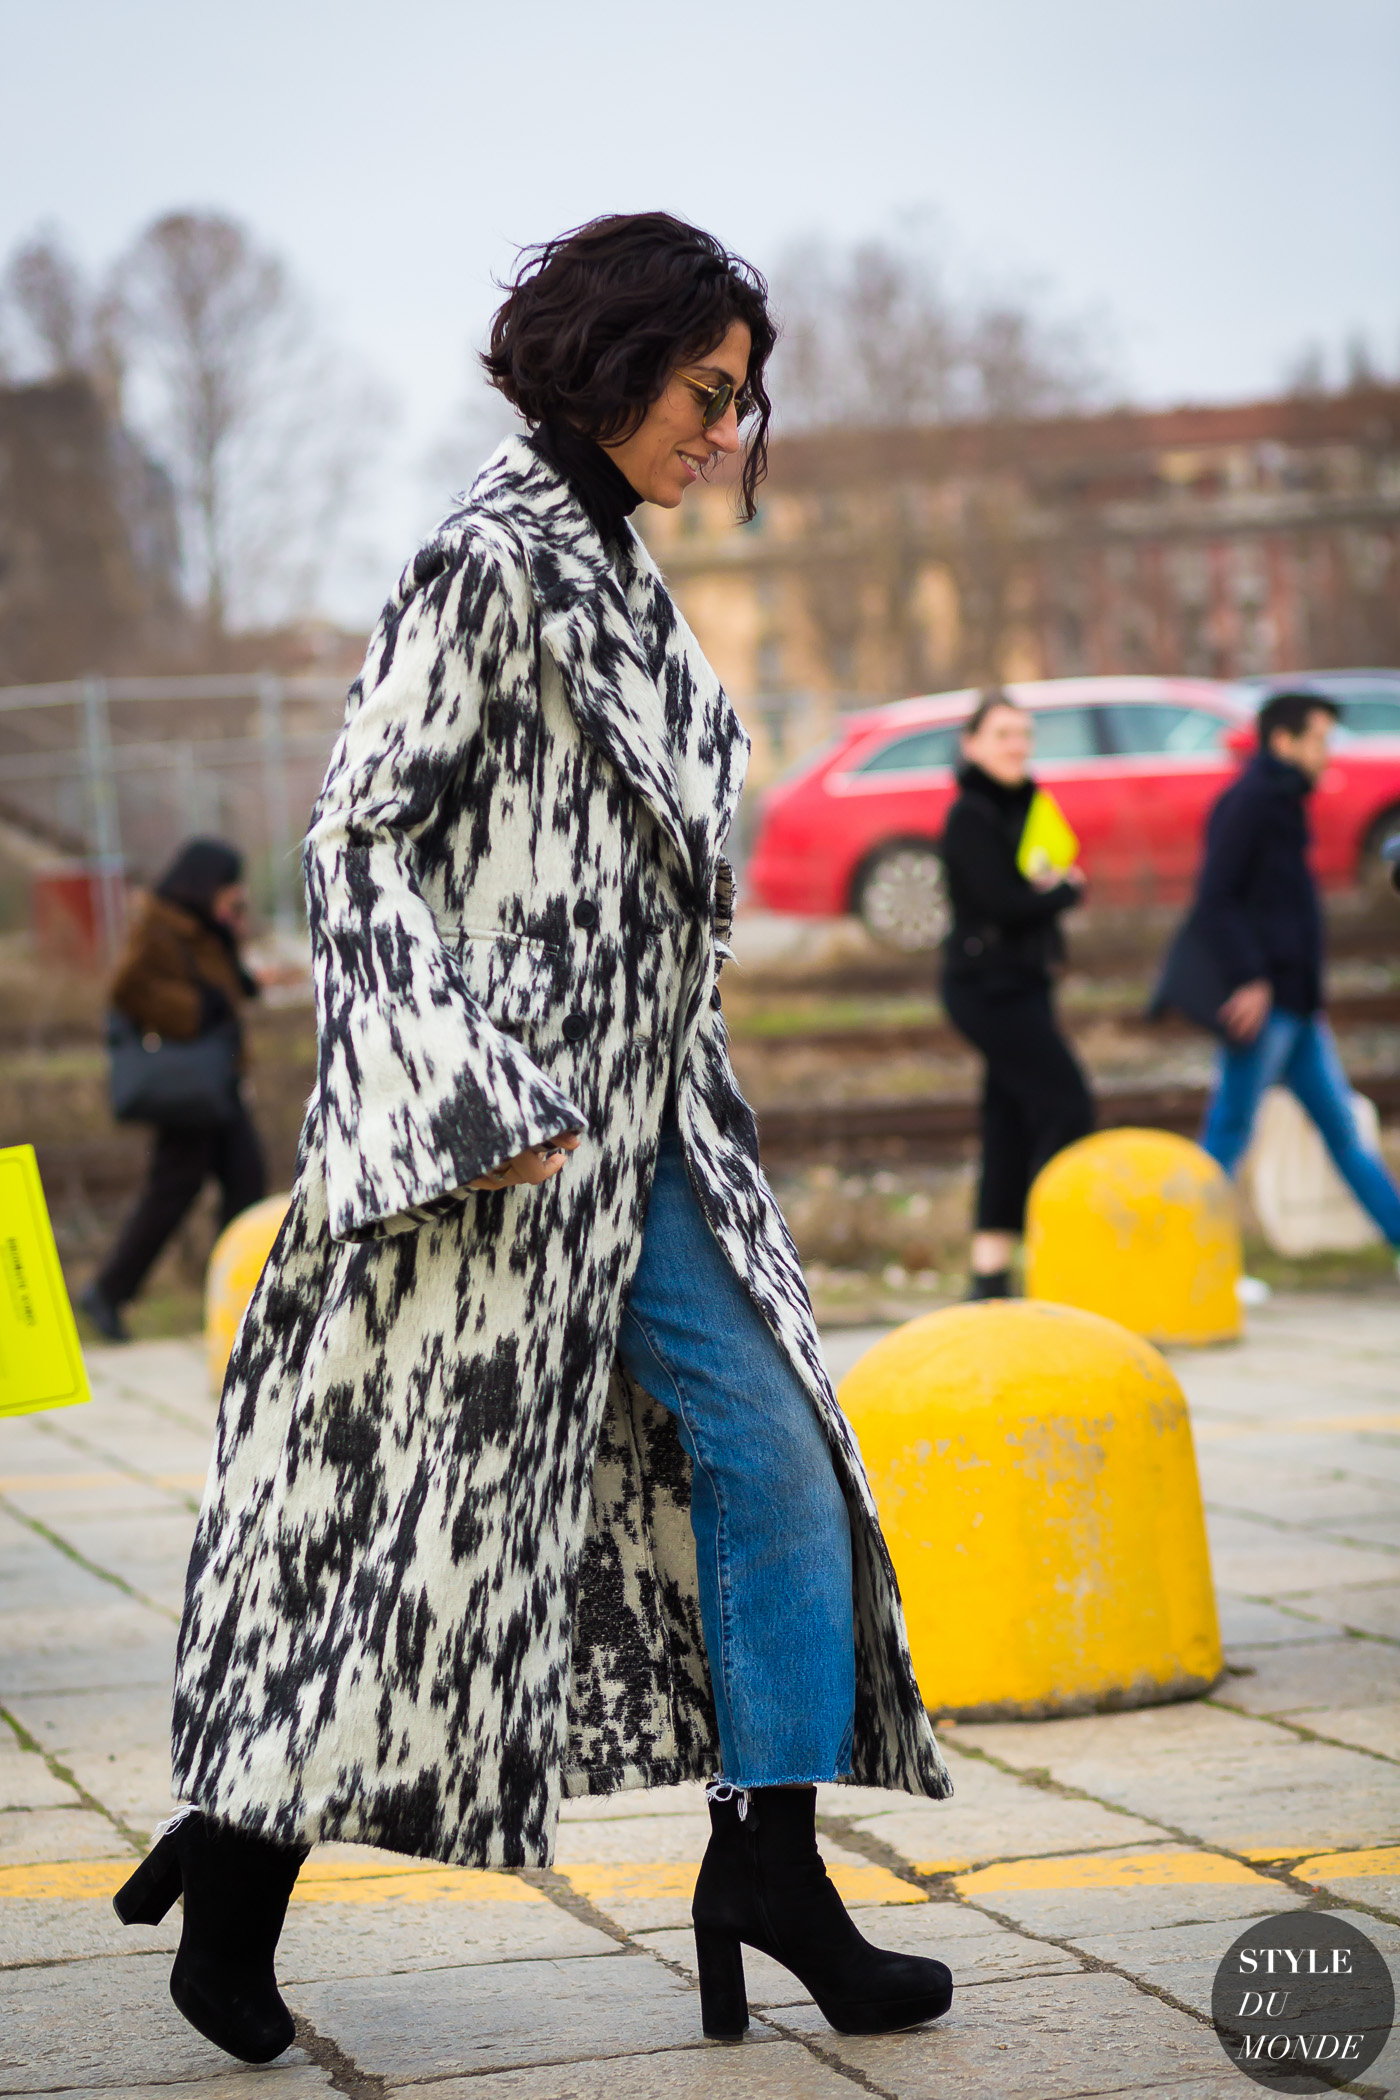 Yasmin Sewell Street Style Street Fashion Streetsnaps by STYLEDUMONDE Street Style Fashion Photography